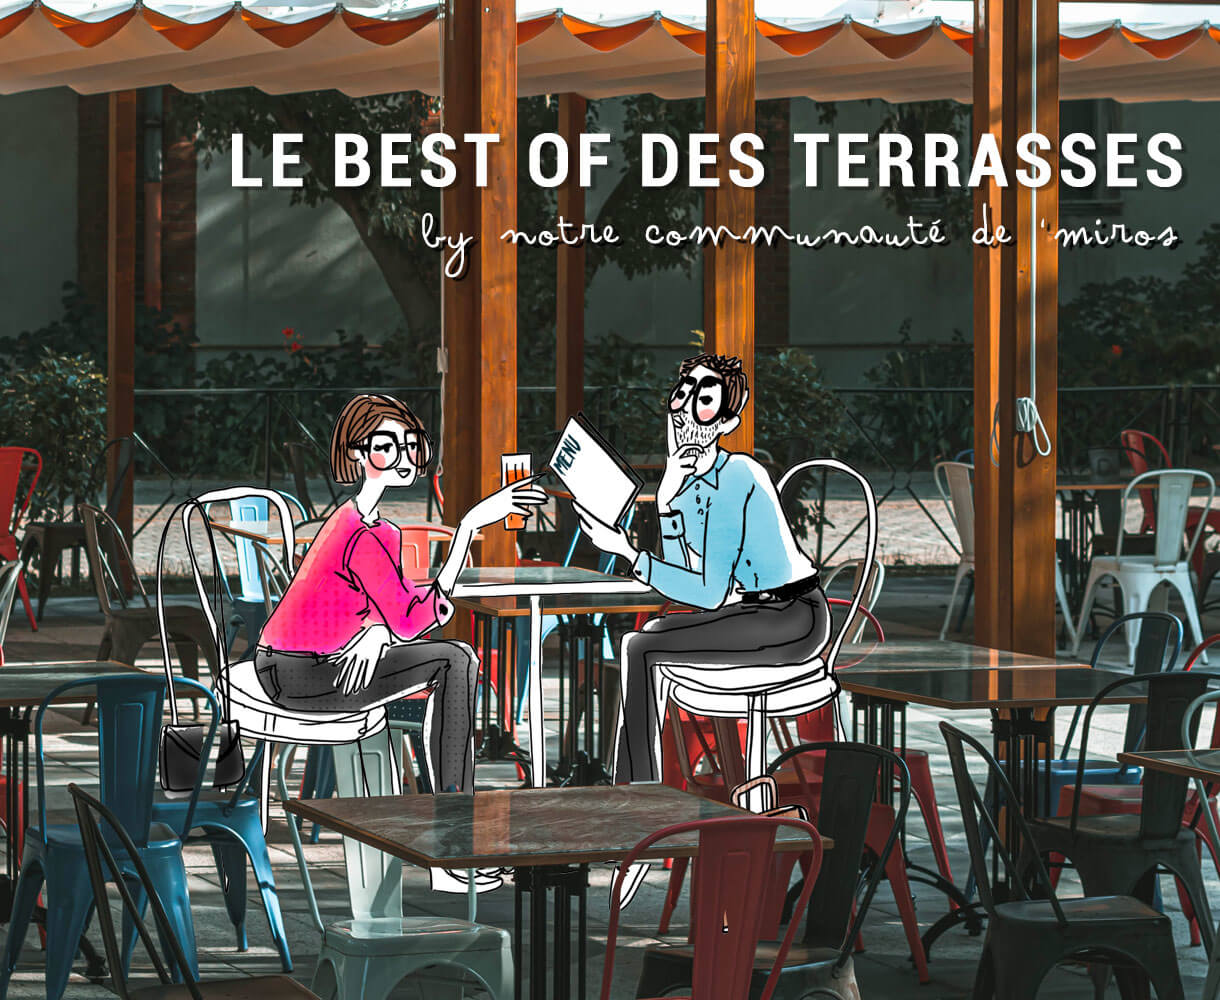 Le best of des terrasses by nos 'Miros